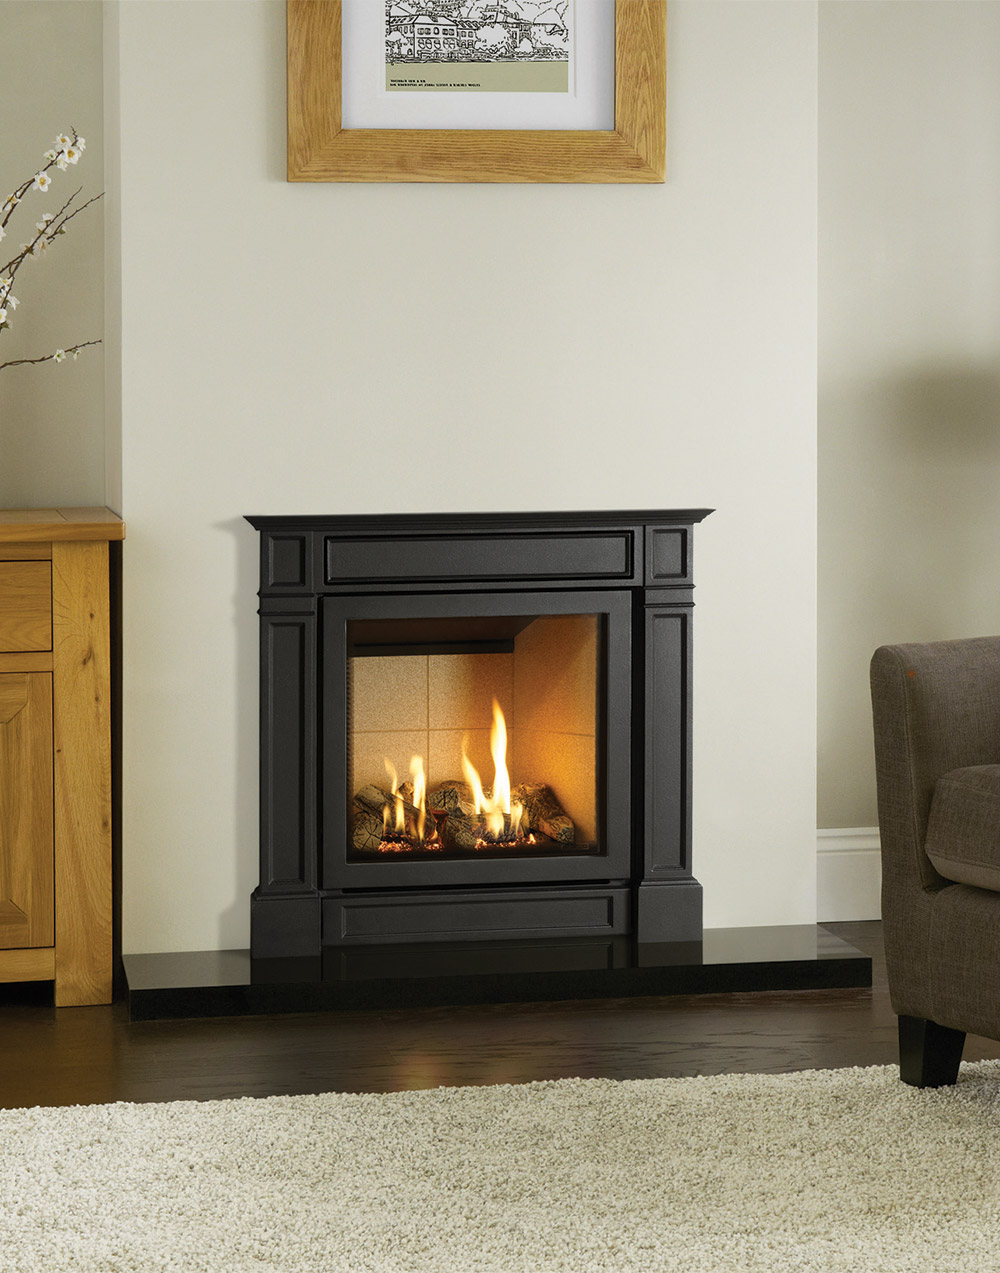 Gazco Riva2 530 Amp 670 Ellingham Hearth Mounted Gas Fires